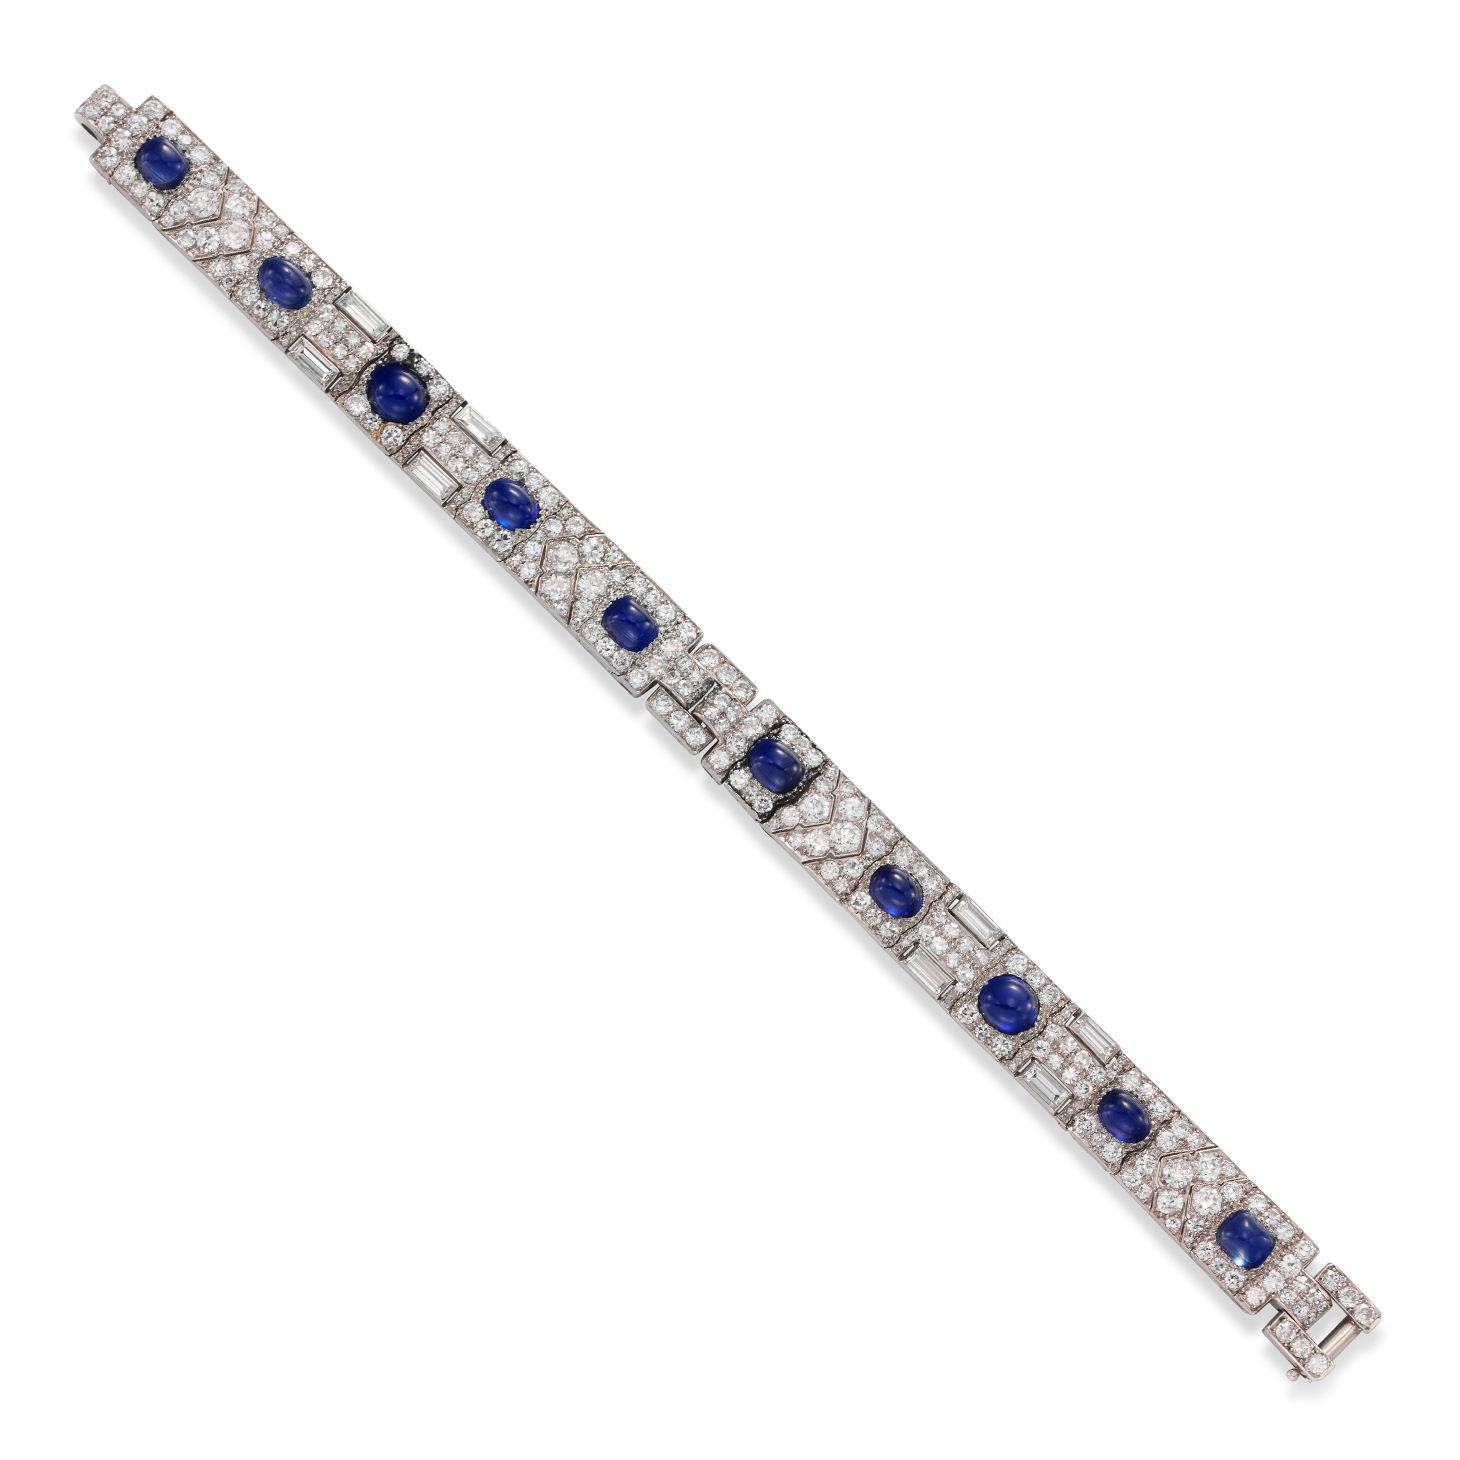 An Art Deco Sapphire and Diamond Bracelet, by Cartier, circa 1925